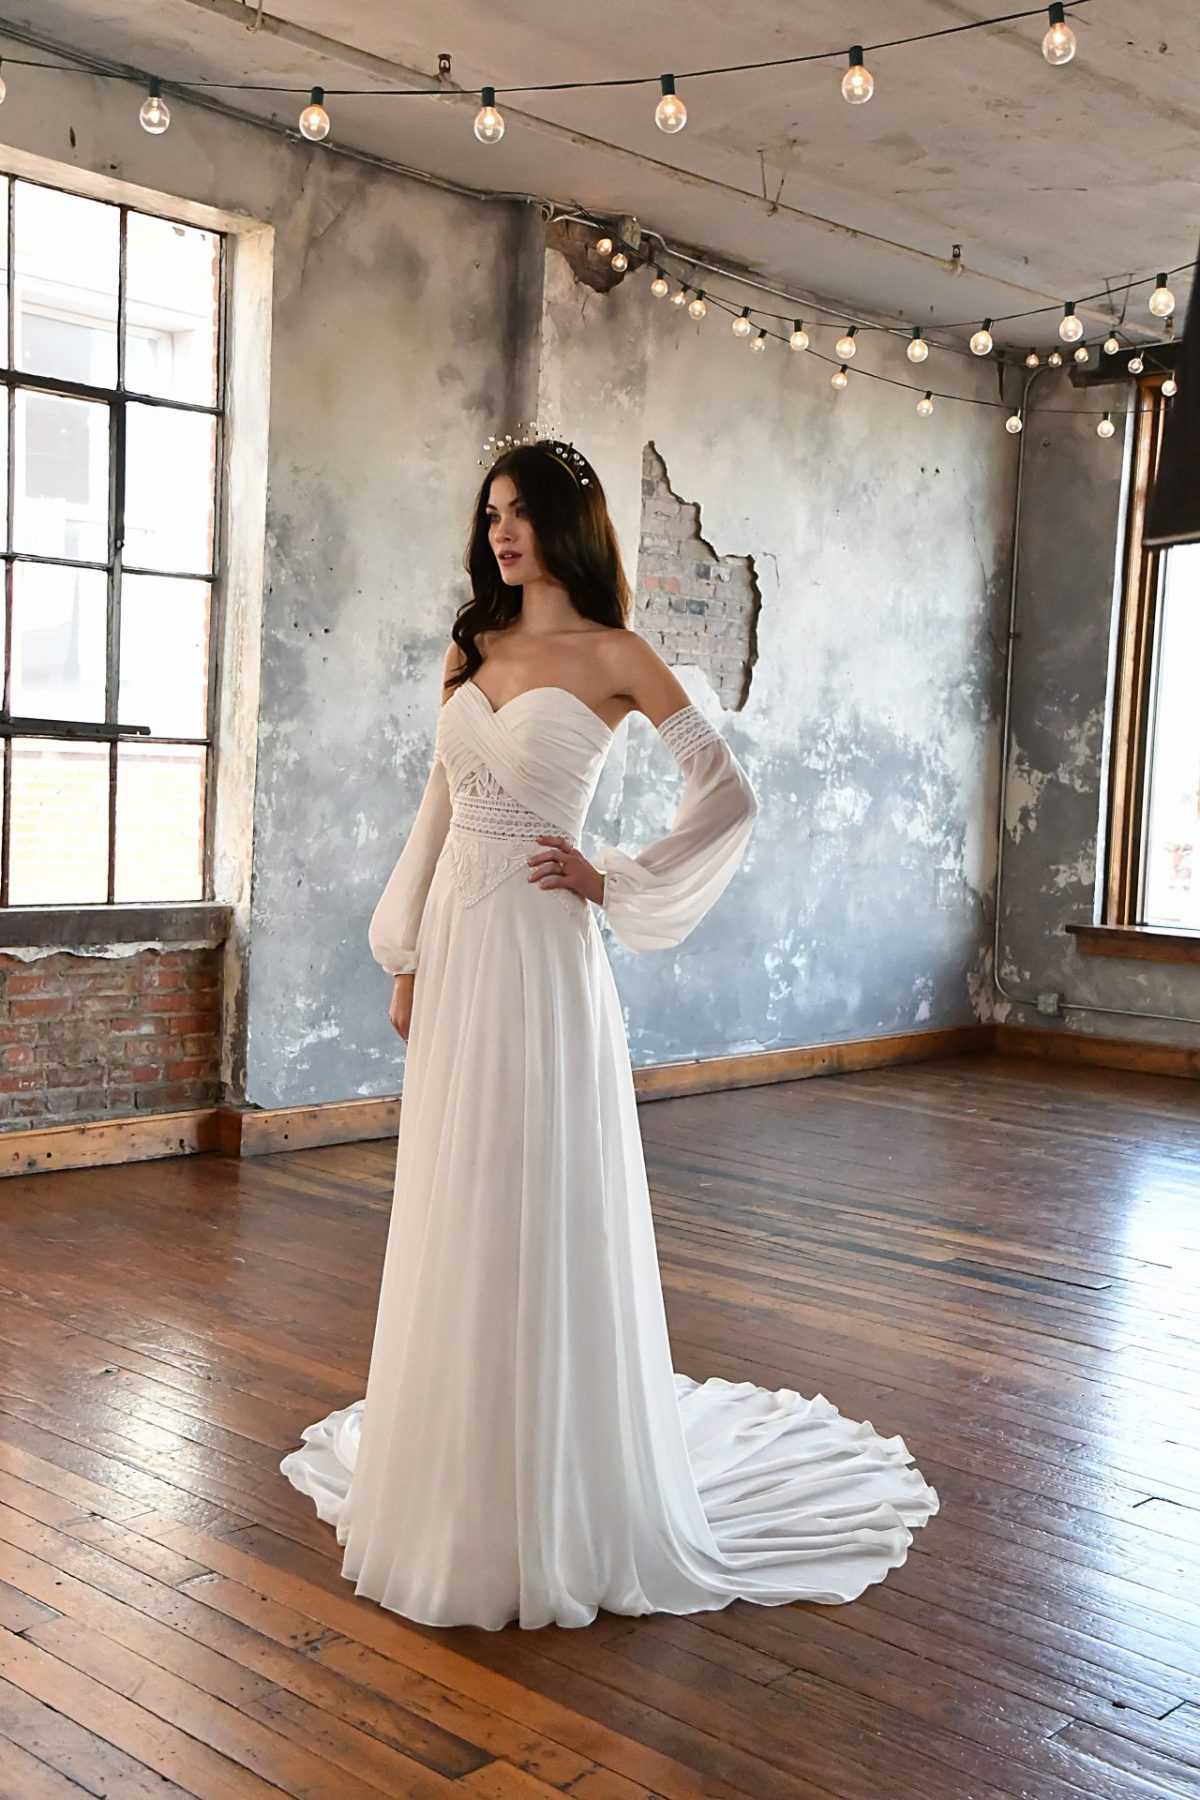 The stunning All who wander Remi wedding dress is available from Emily Bridalwear in Sheffield, South Yorkshire.